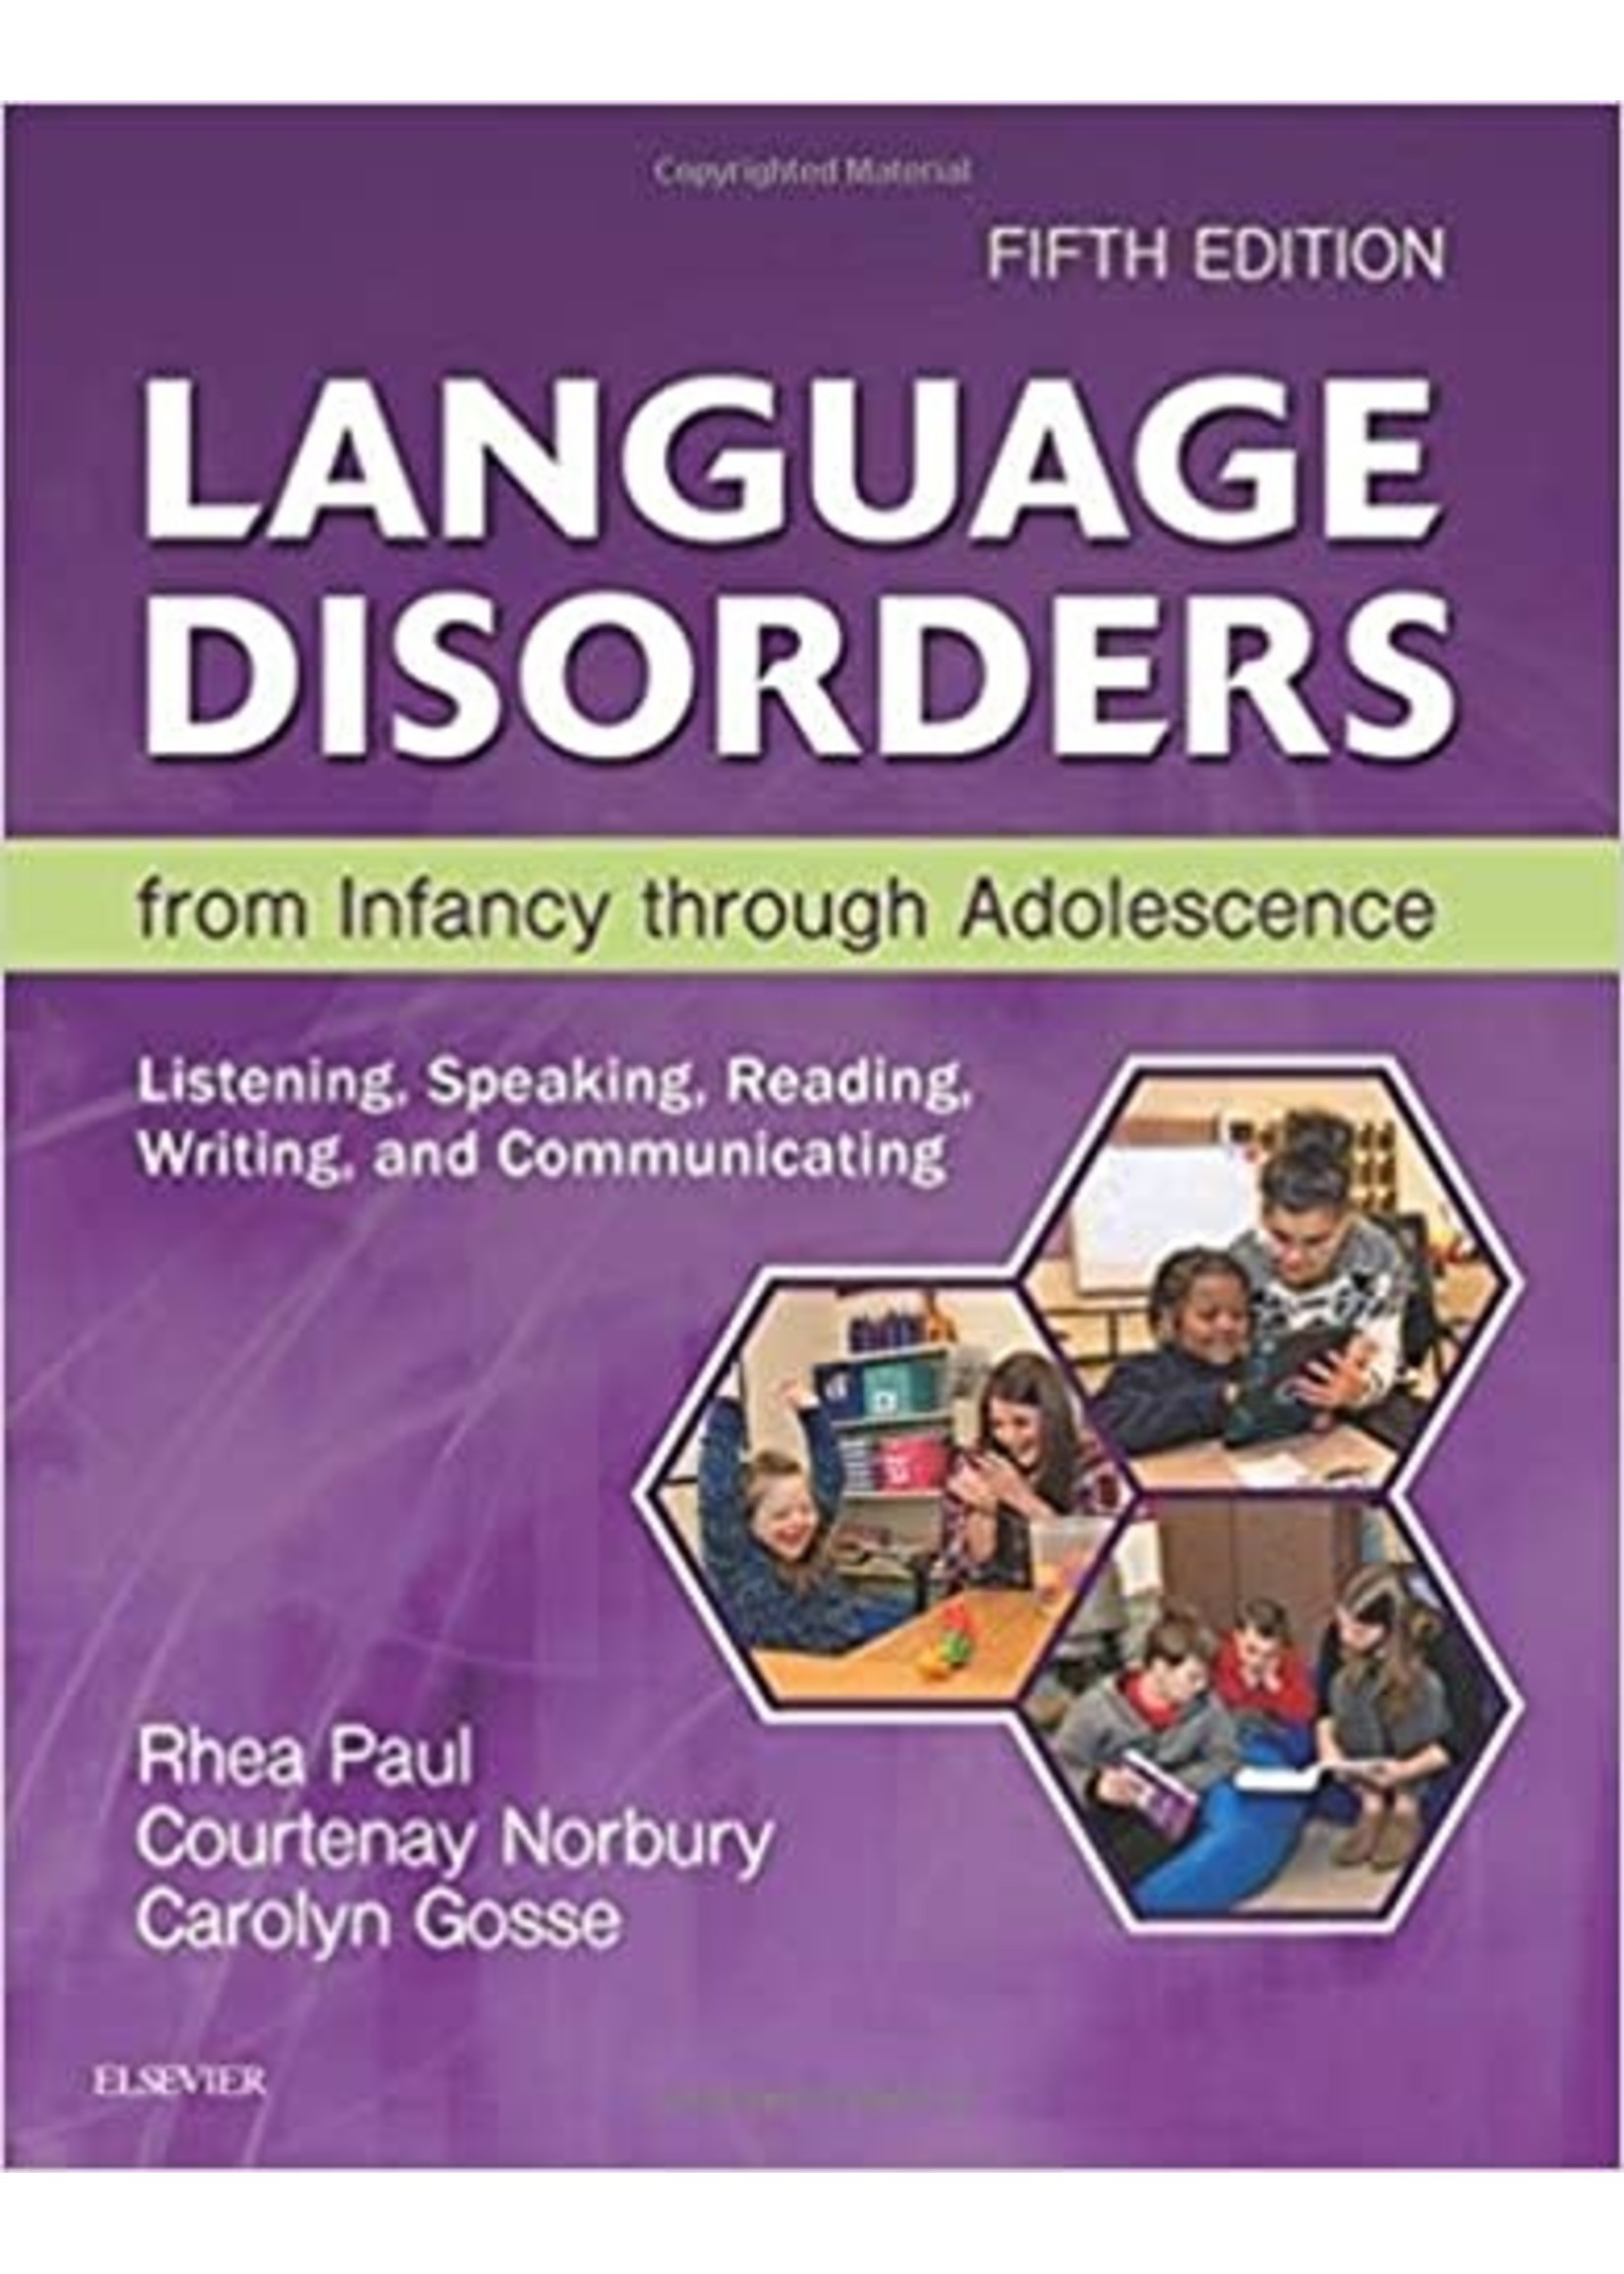 CSD511 LANGUAGE DISORDERS FROM INFANCY THR ADOL